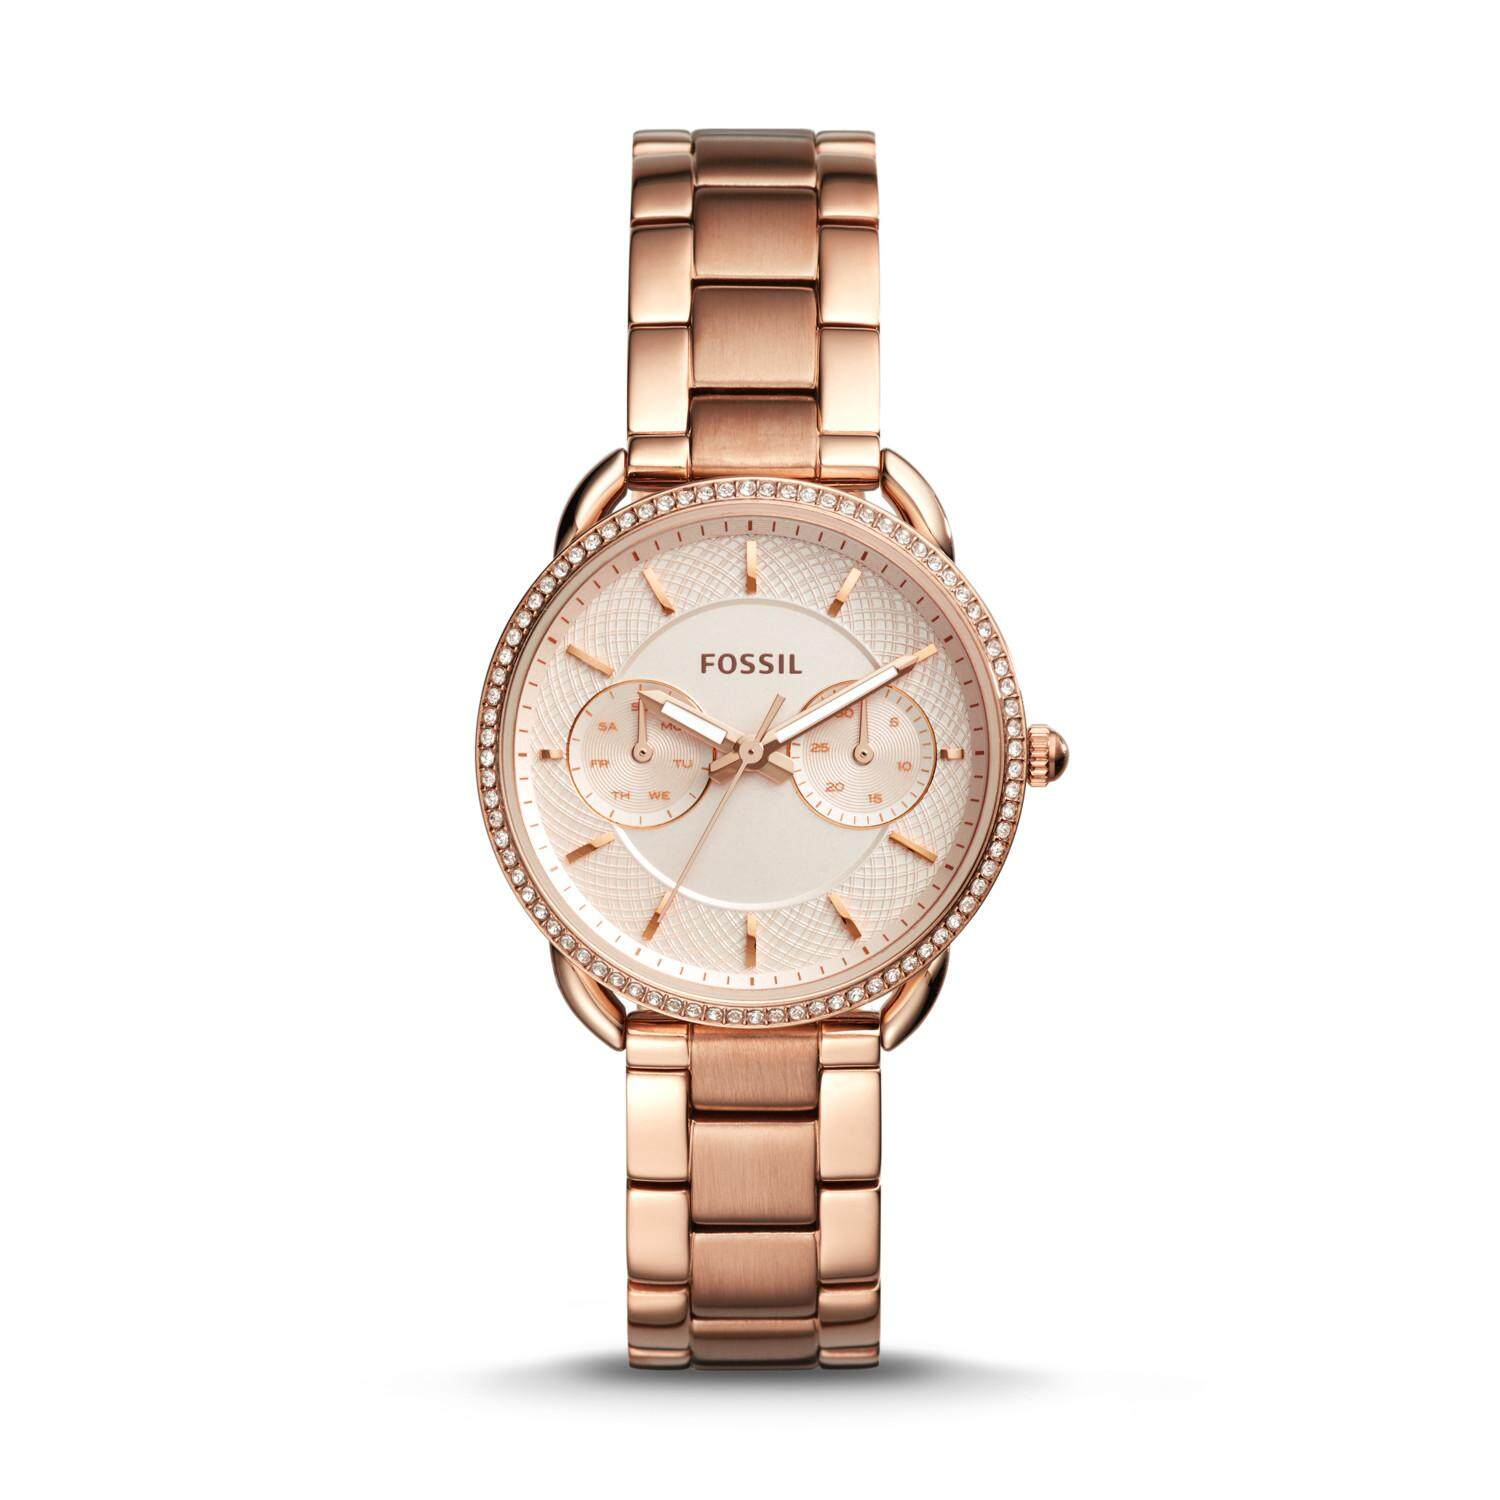 Jam Tangan Wanita Casio Ltp 1094e 7b Original Buy Formal Watches For Women At Best Prices Online In Malaysia Fossil Womens Es4264 Tailor Multifunction Stainless Steel Watch Rose Gold